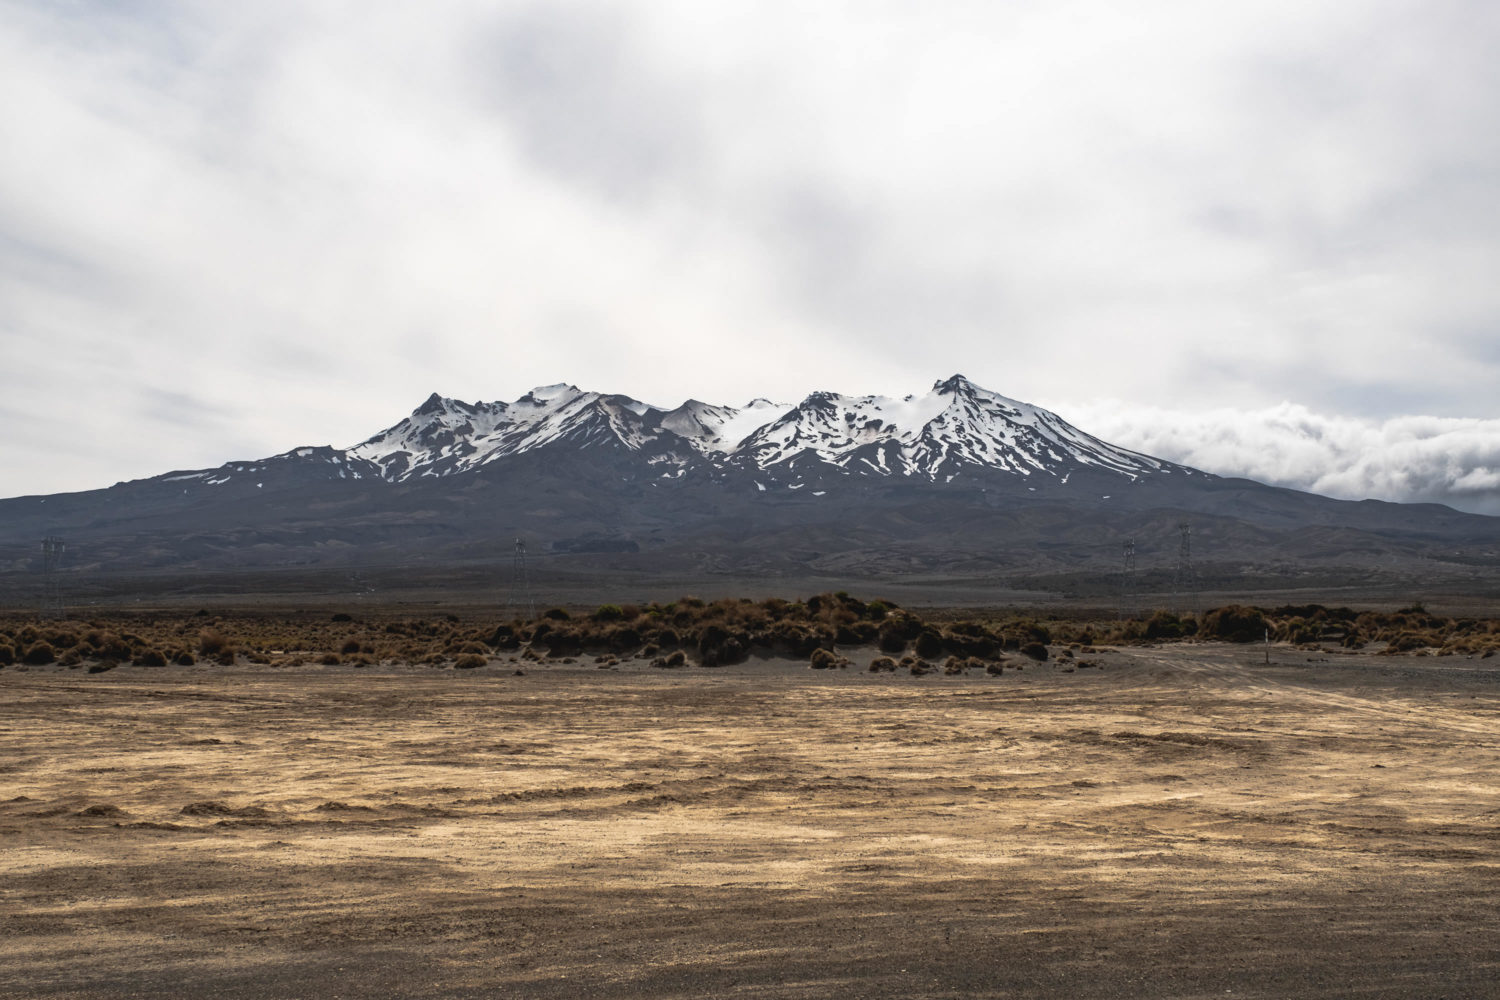 Mount Ruapehu im Tongariro National Park in Neuseeland